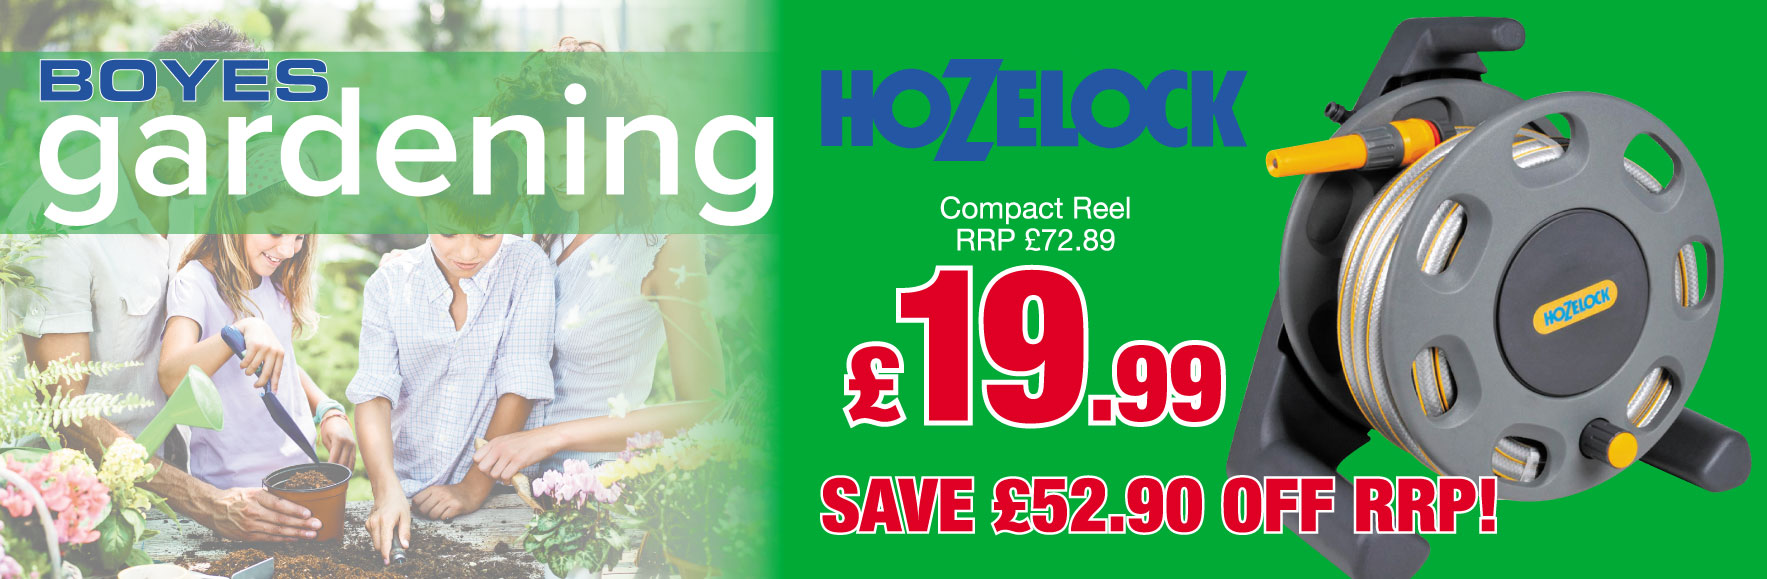 Hozelock Compaact reel RRP £72.89 ONLY £19.99!